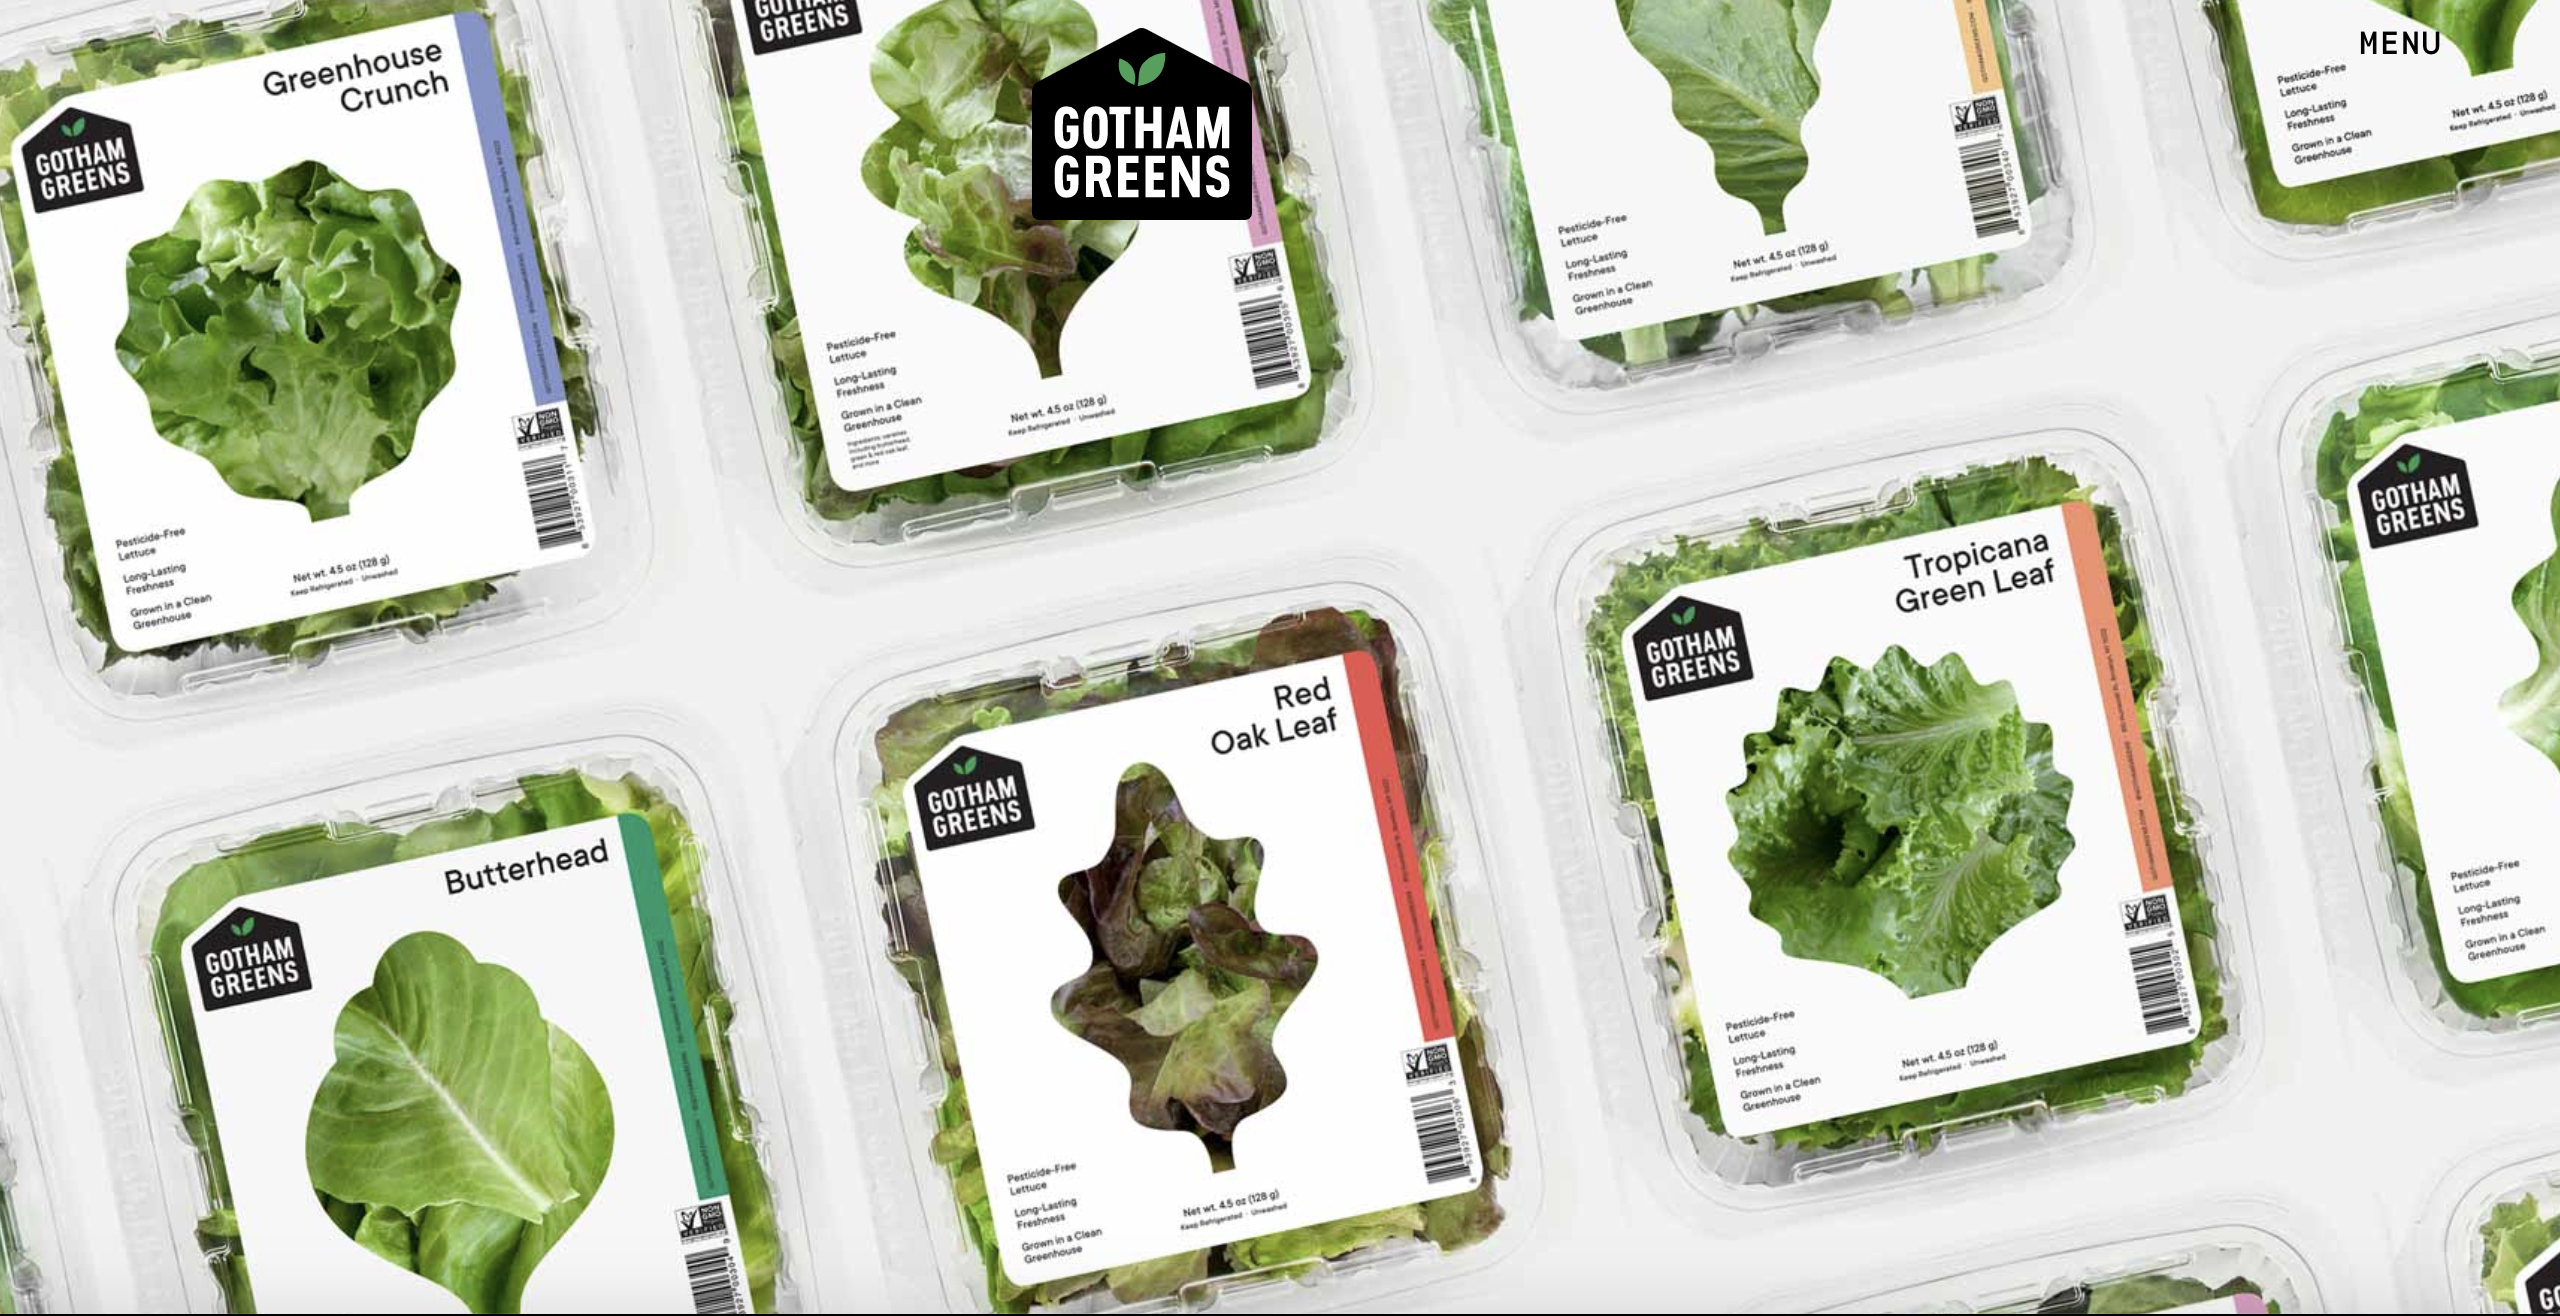 New York-based indoor ag company Gotham Greens raises $87 million